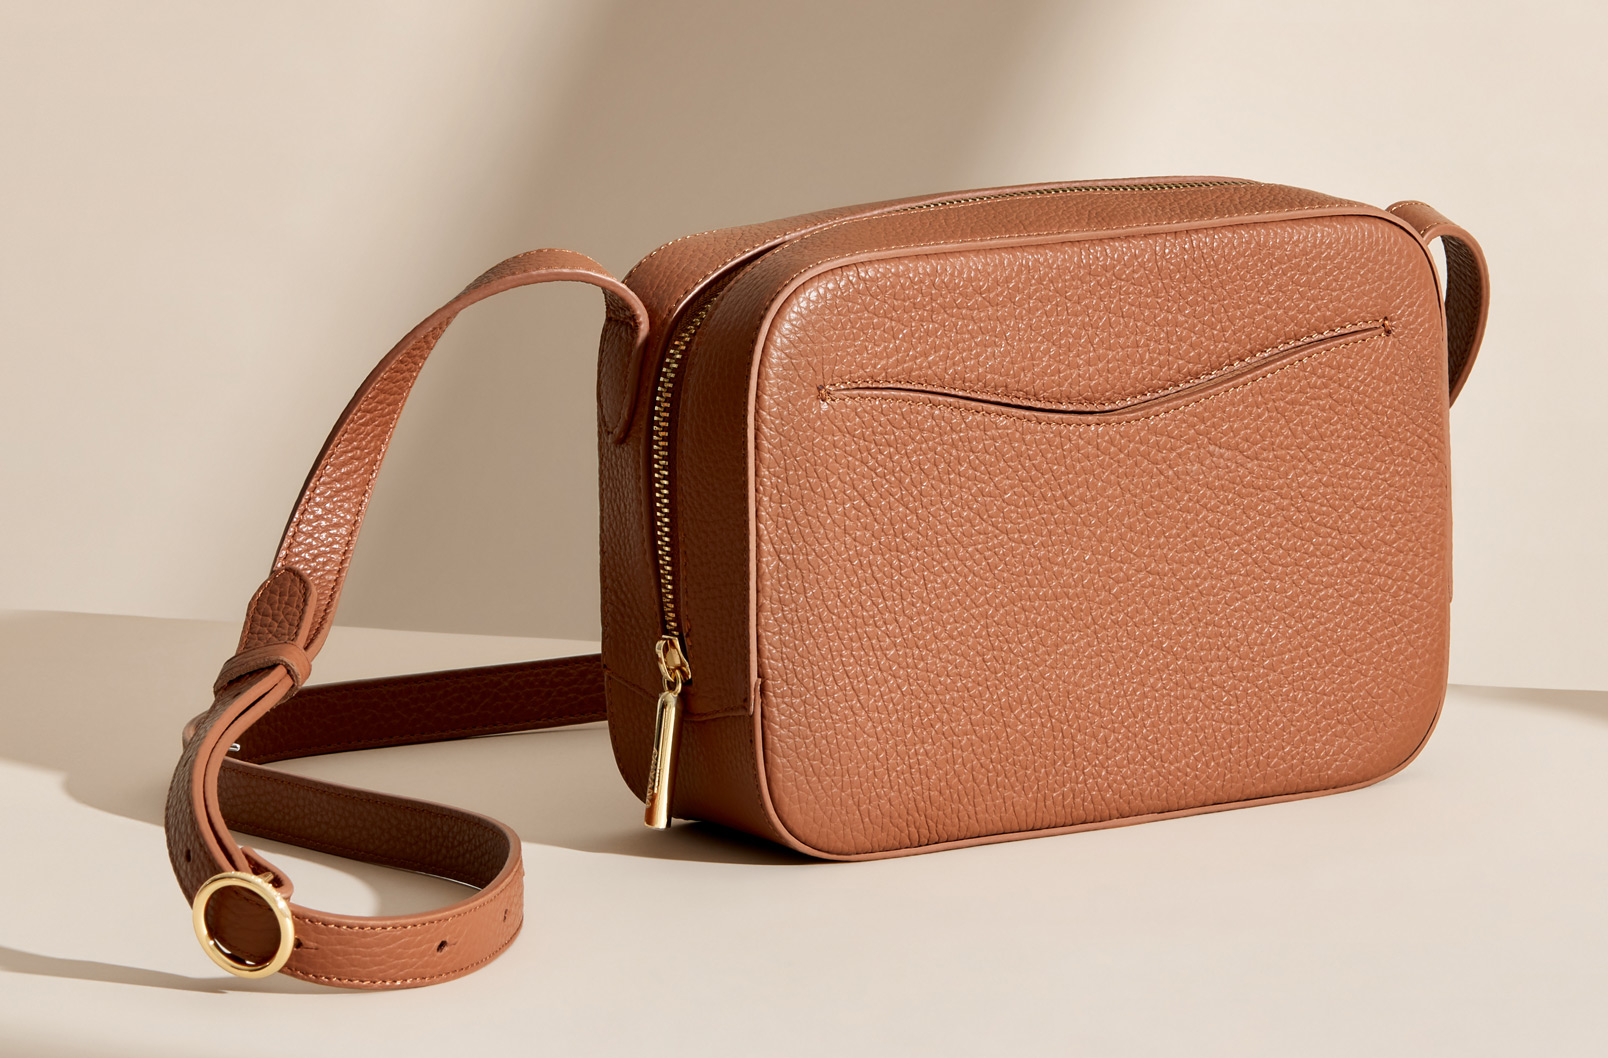 Cuyana Camera bag with exterior slit pocket in Caramel